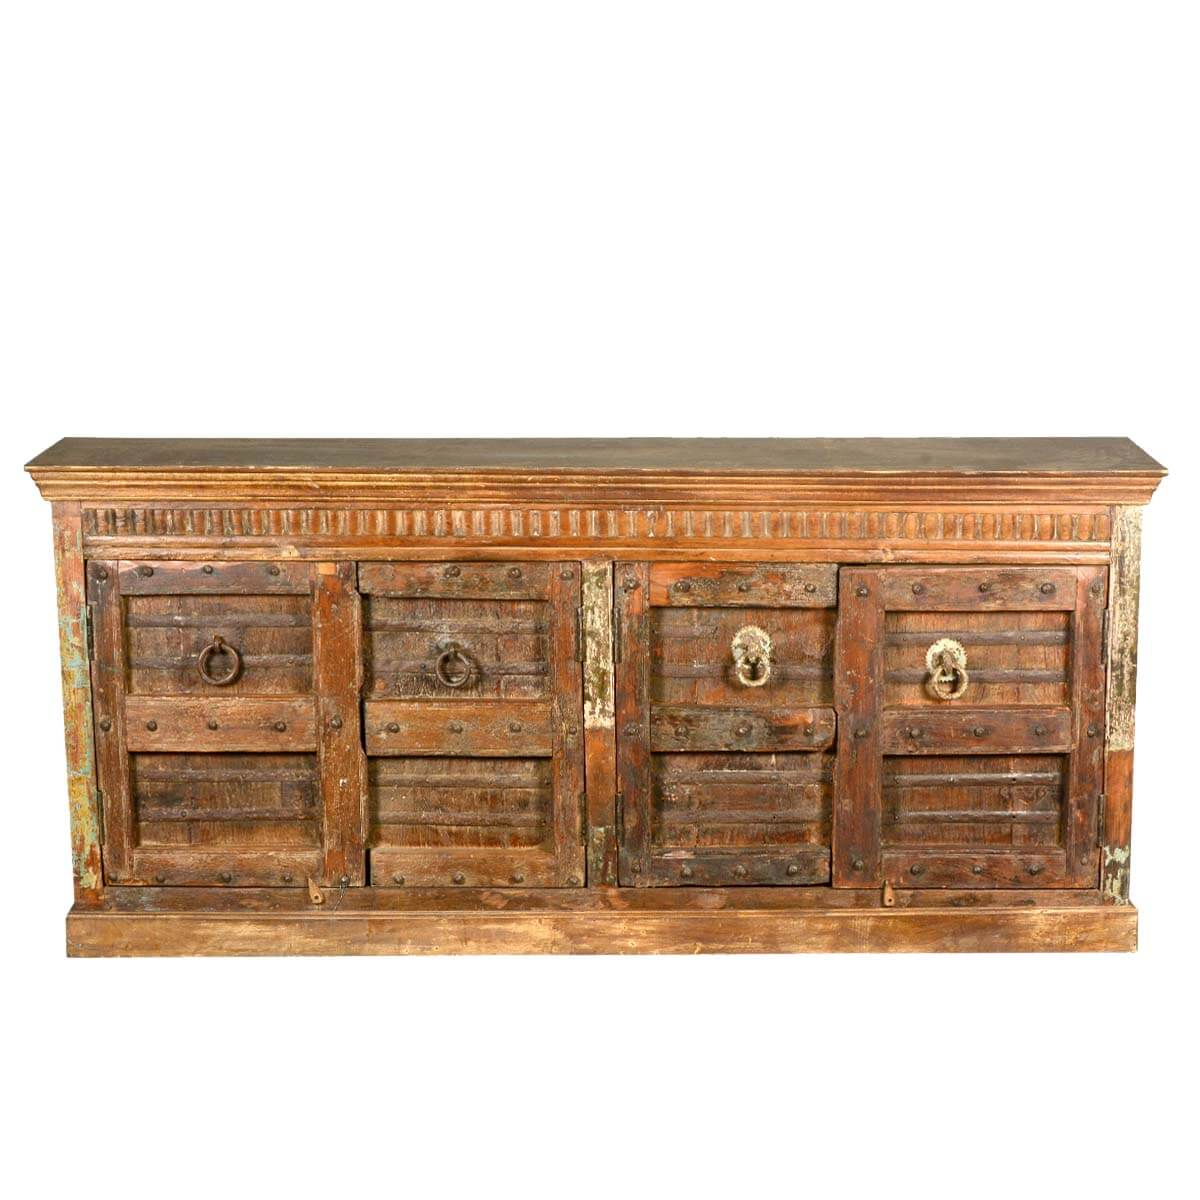 Reclaimed Wood Furniture Large Gothic 4 Door Sideboard